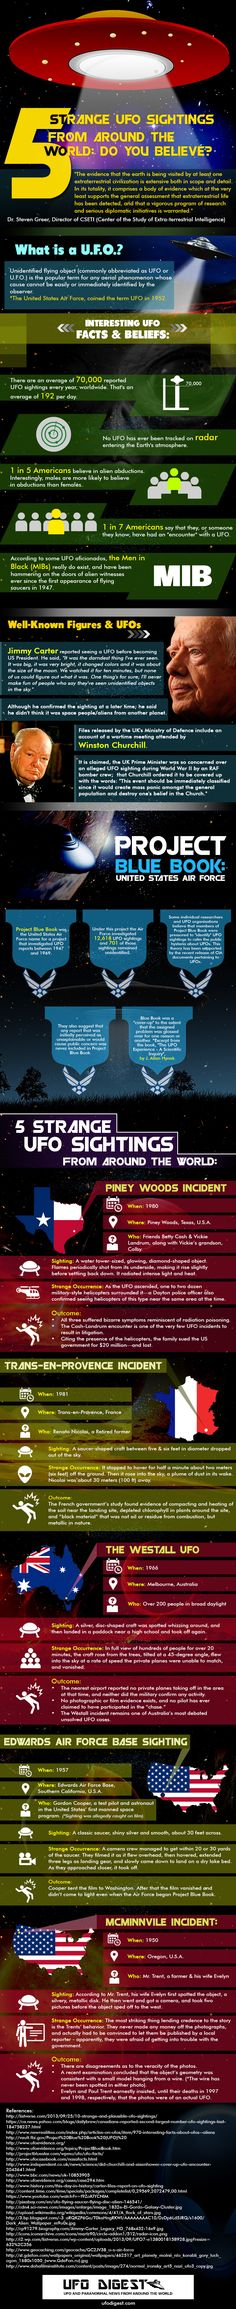 5 Strange UFO Sightings From Around the World - Do you fancy an infographic? There are a lot of them online, but if you want your own please visit http://www.linfografico.com/prezzi/ Online girano molte infografiche, se ne vuoi realizzare una tutta tua visita http://www.linfografico.com/prezzi/